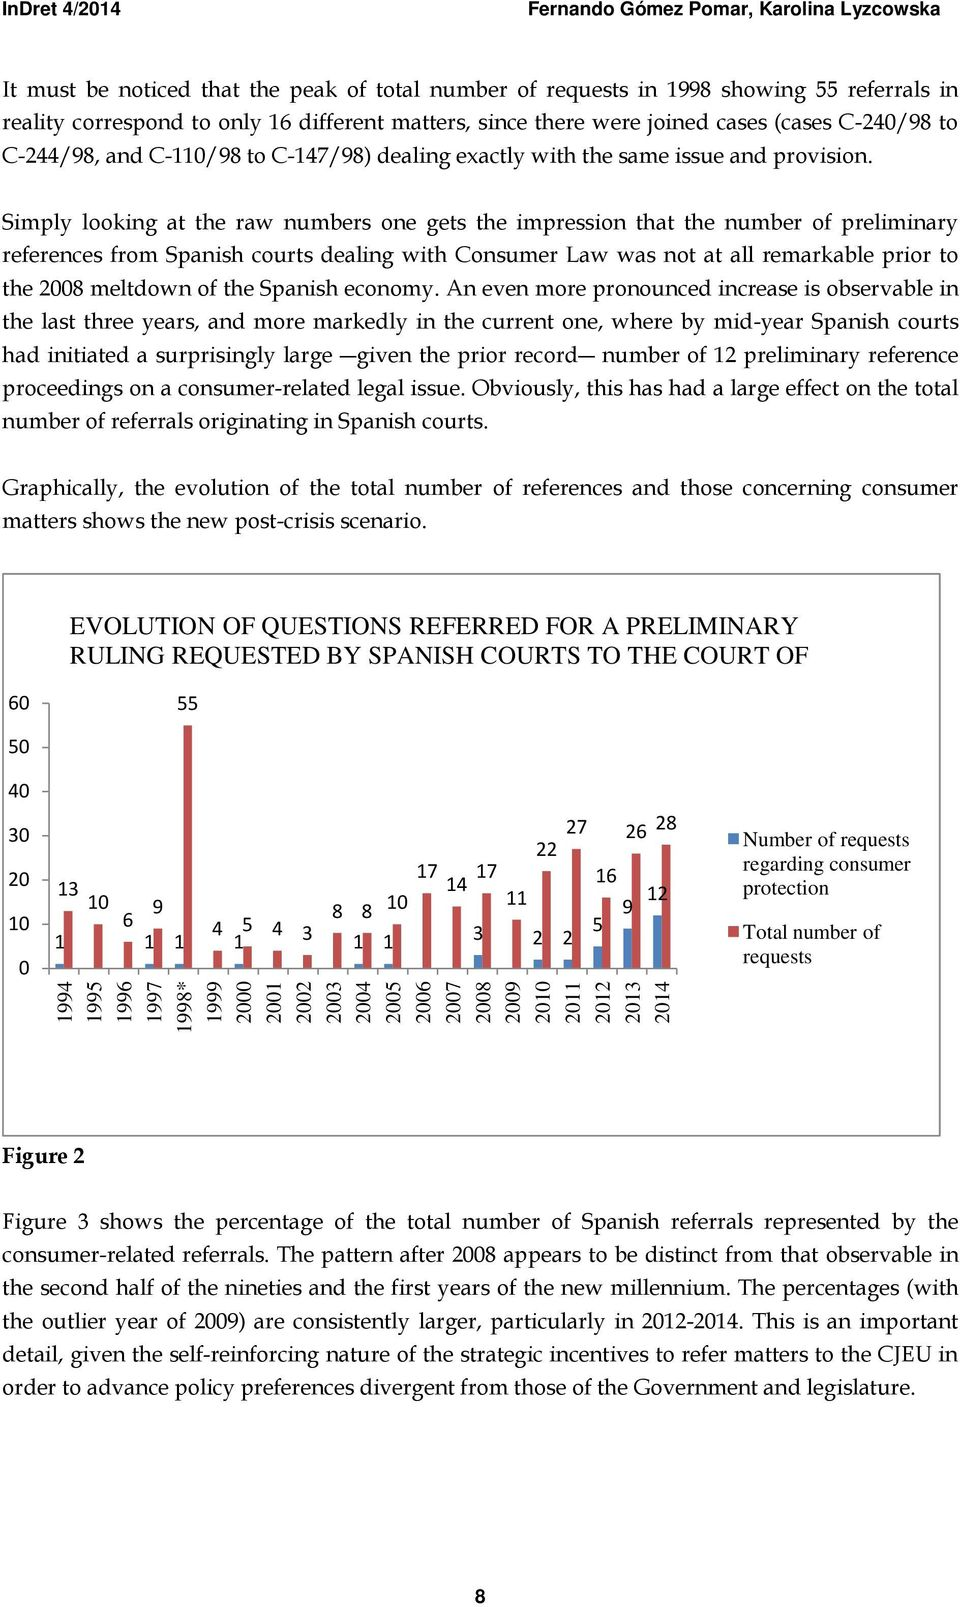 Simply looking at the raw numbers one gets the impression that the number of preliminary references from Spanish courts dealing with Consumer Law was not at all remarkable prior to the 2008 meltdown